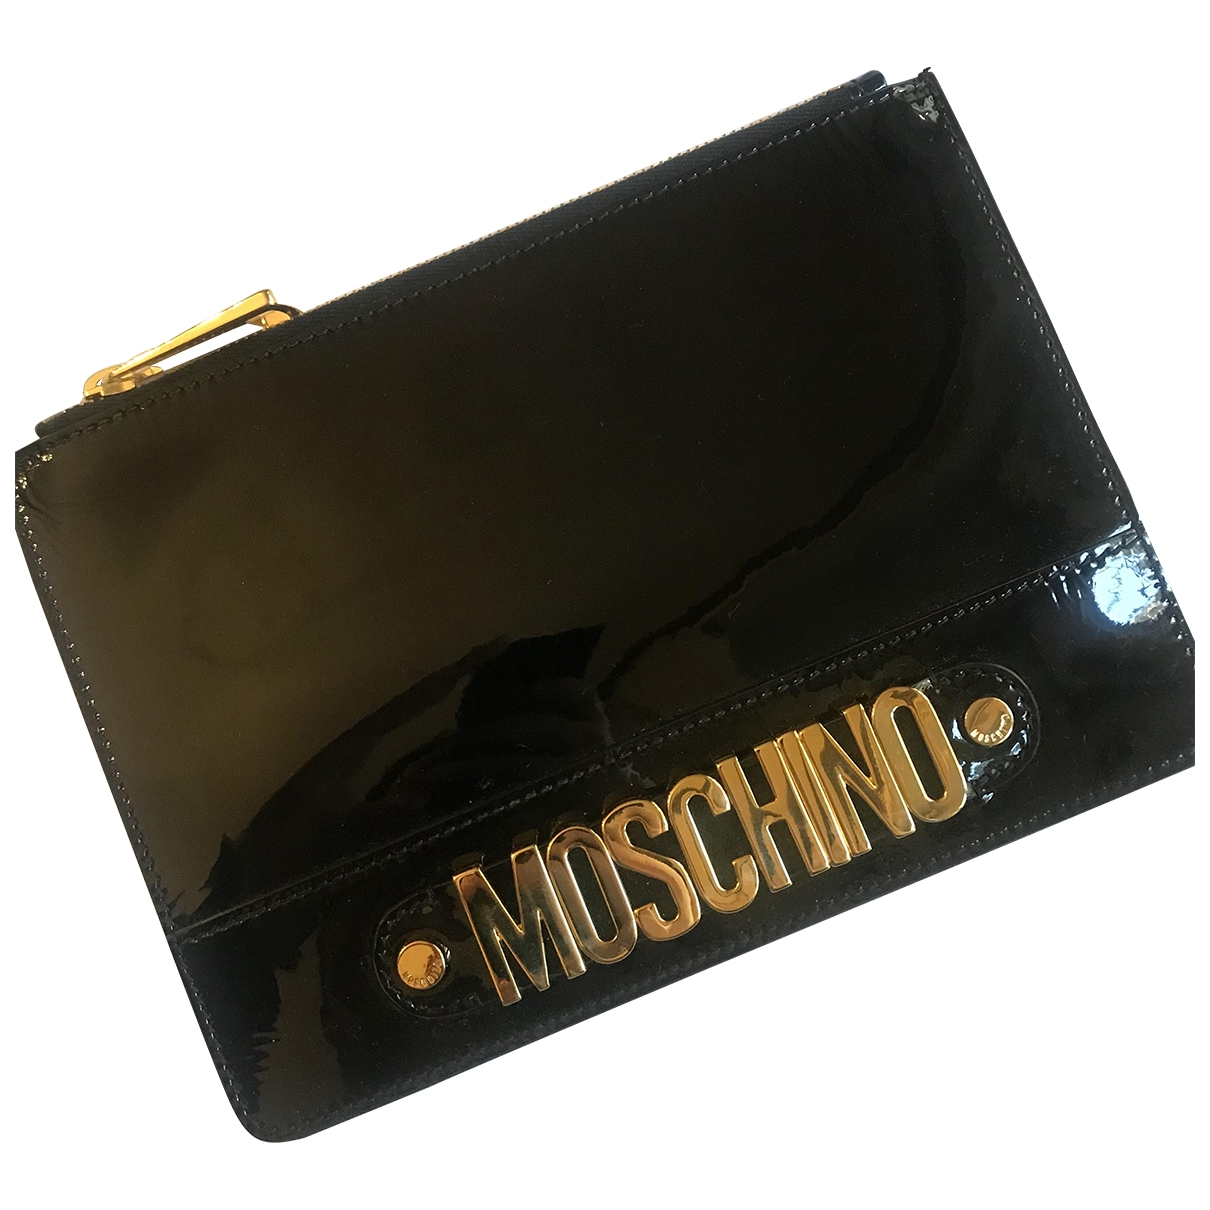 Moschino \N Black Patent leather Clutch bag for Women \N